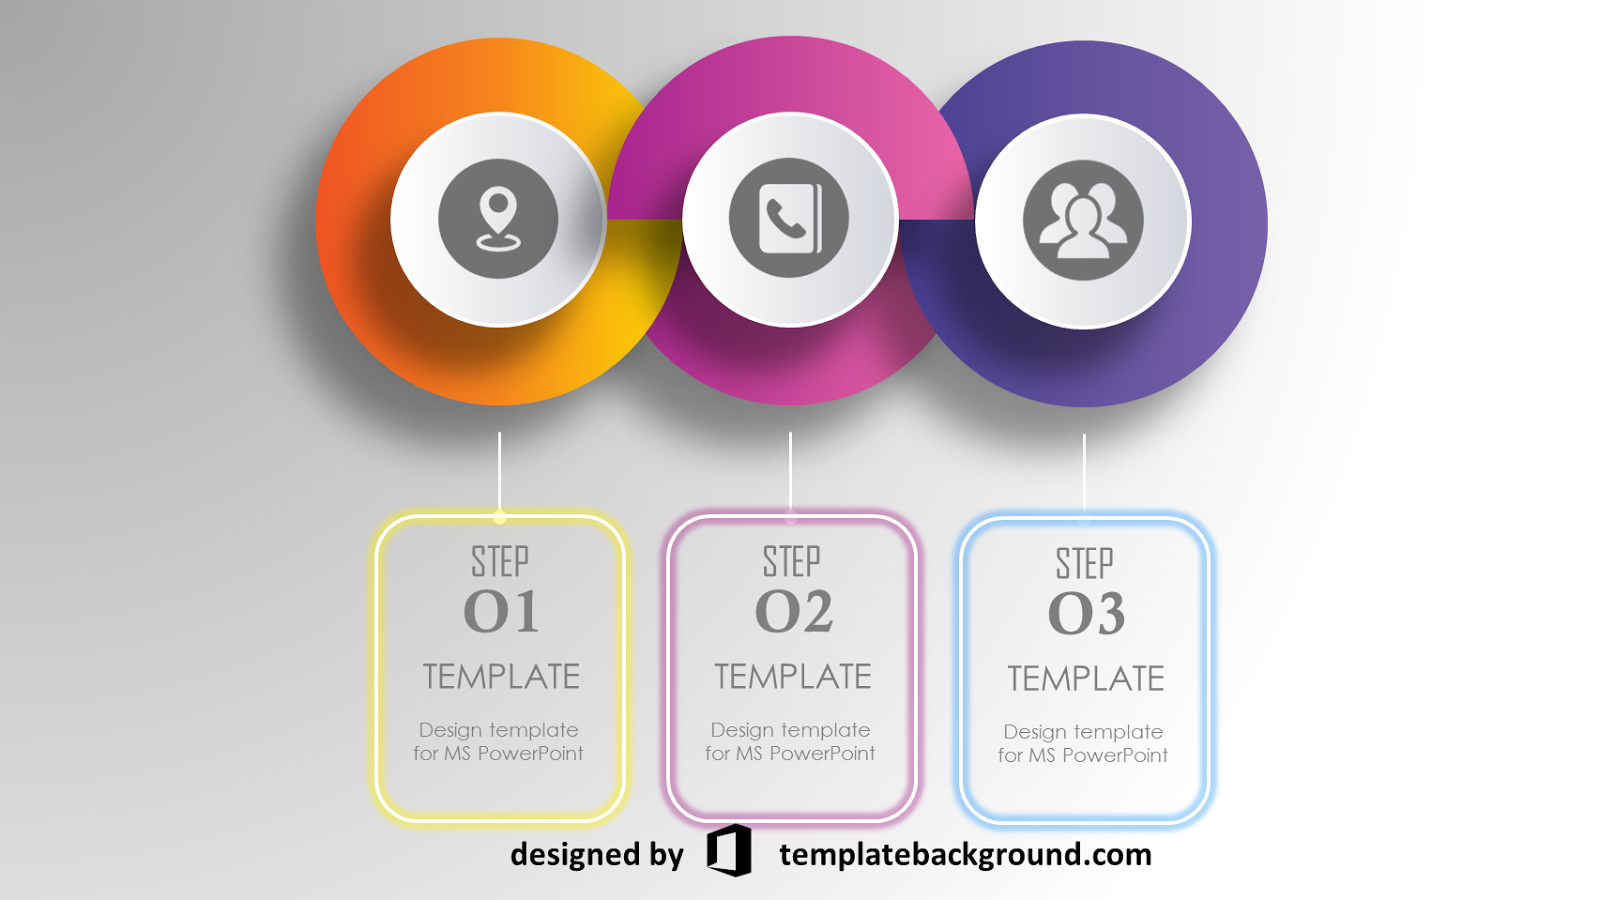 Free 3d animated powerpoint templates download google slides free 3d animated powerpoint templates download toneelgroepblik Images